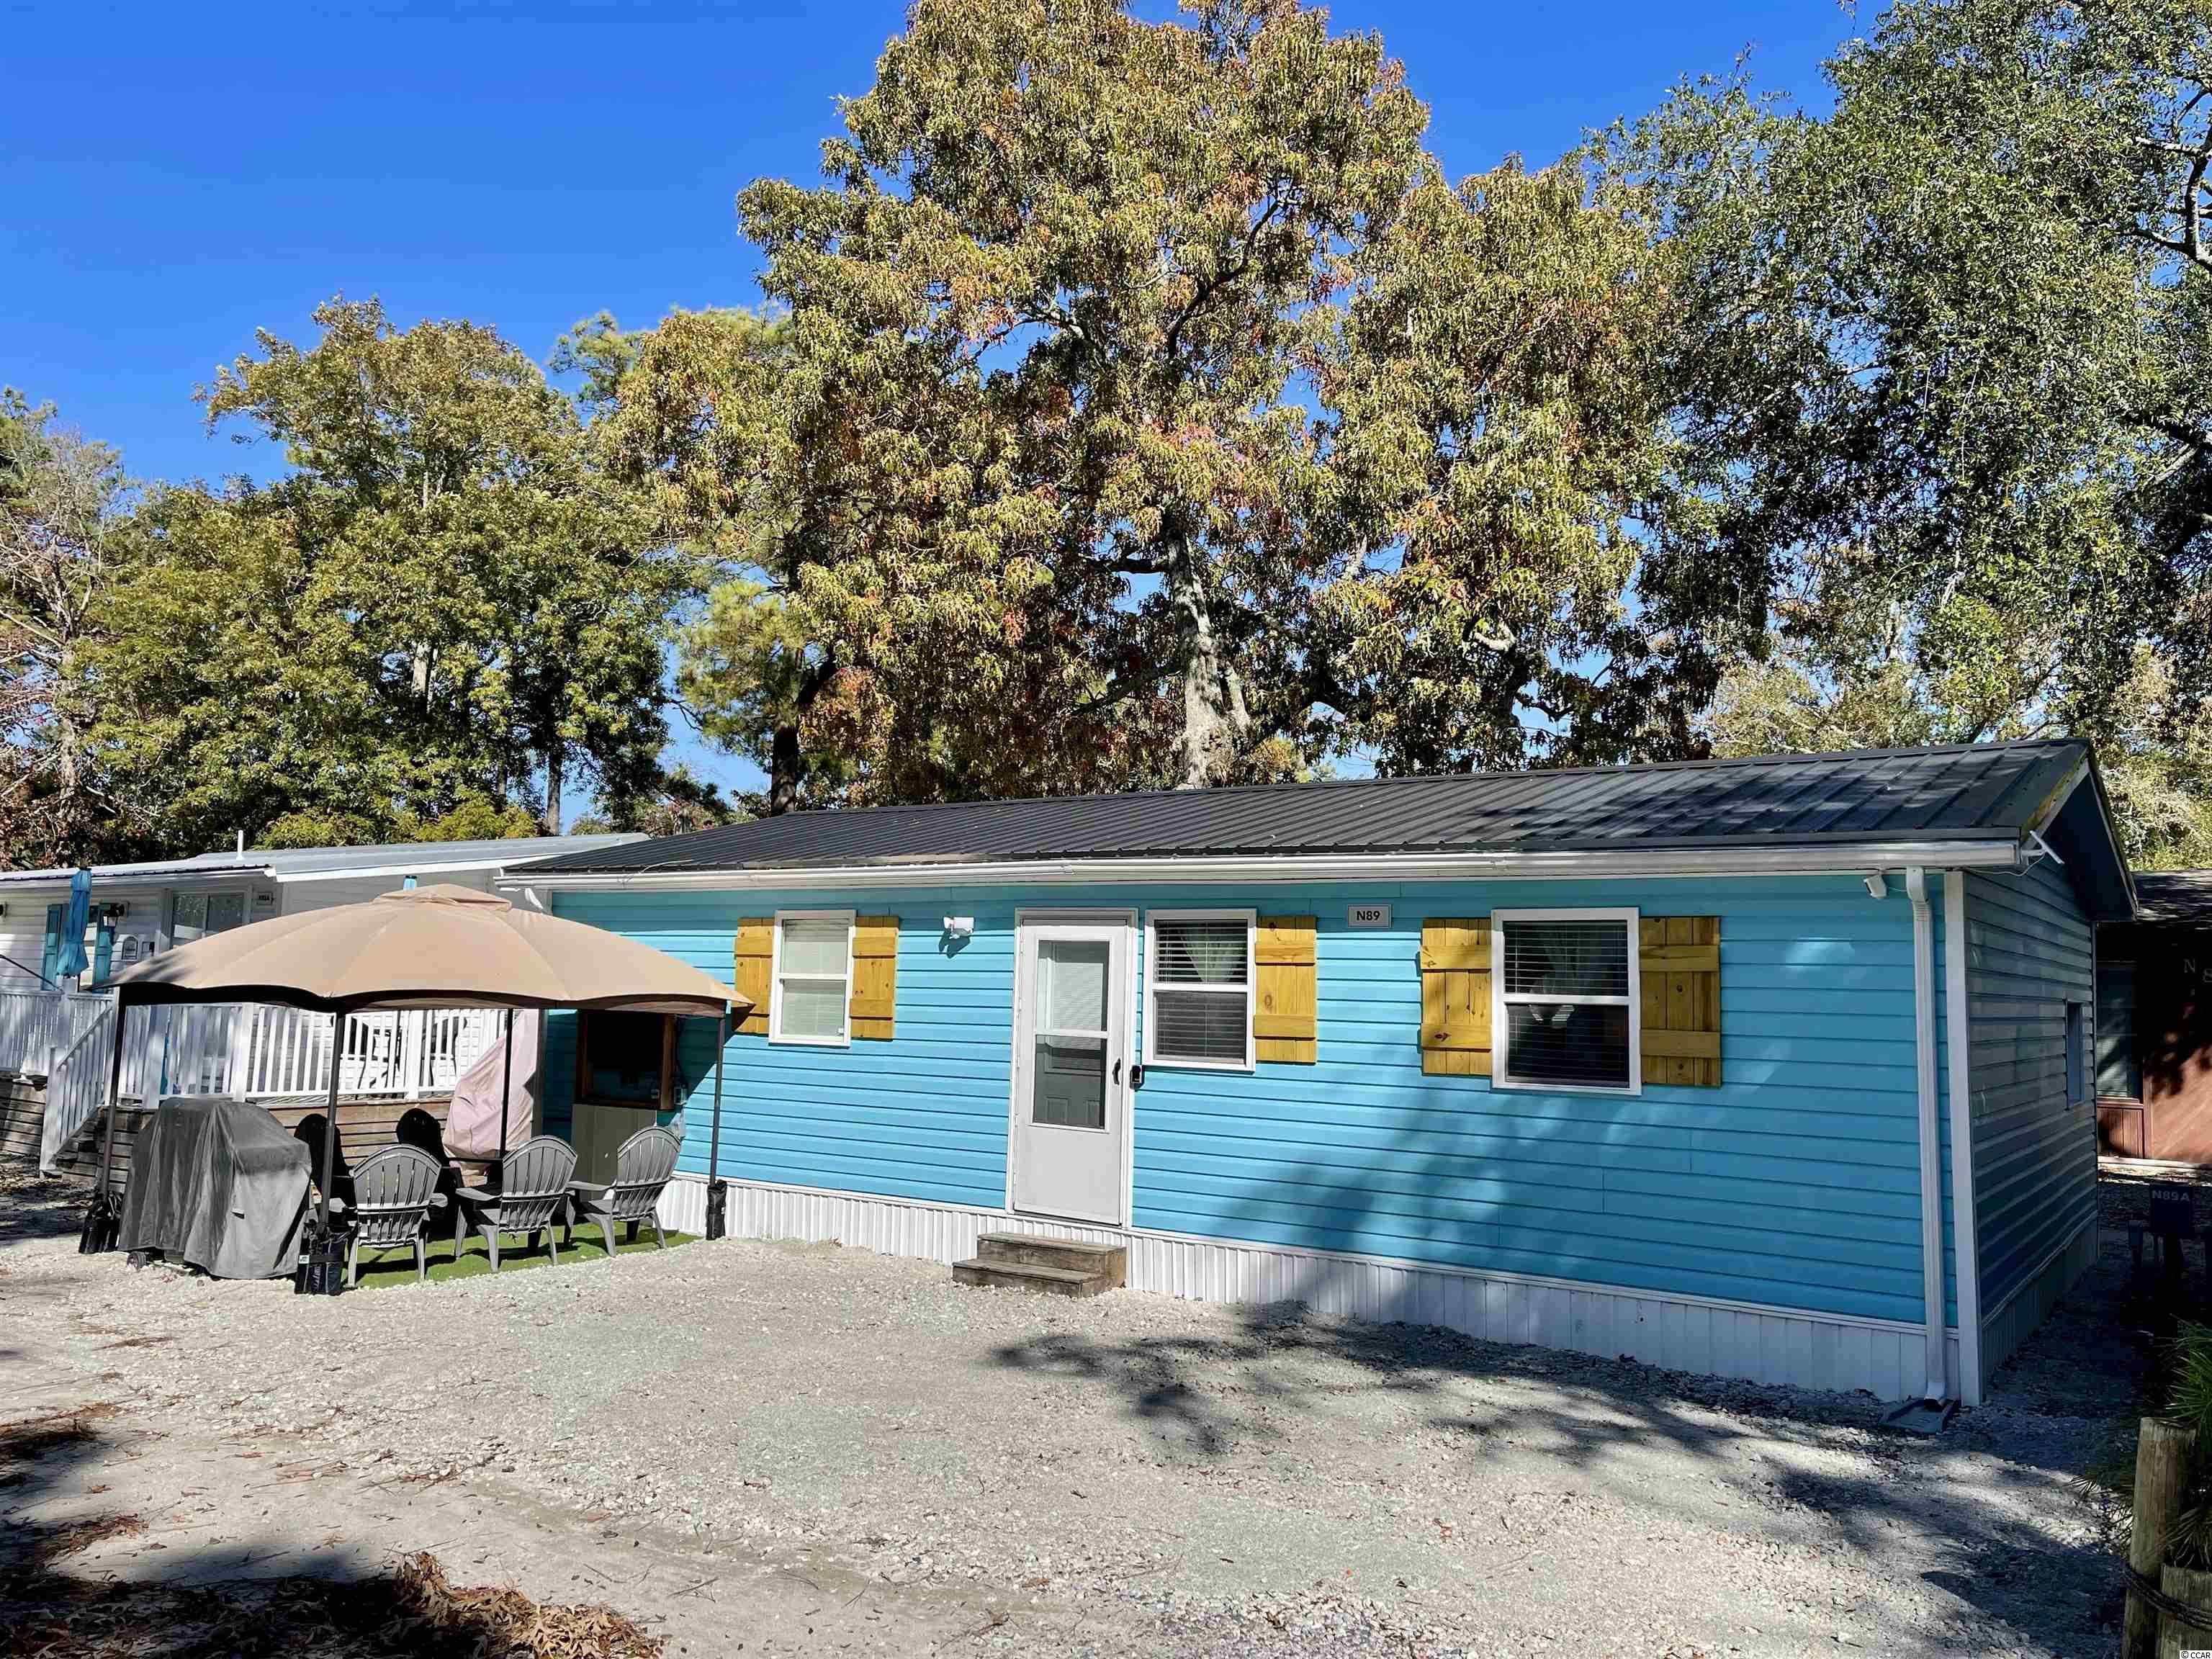 TURNKEY INVESTMENT ON THIS NEWLY UPDATED 2 BED/2 BATH BEACH HOUSE w/ BUNK HOUSE, NEW EVP FLOORING, NEW KITCHEN, NEW MASTER BATH AND A NEW METAL ROOF. Located in the central part of the park and close to all amenities, this home has a wonderful open floor plan and tons of NEW UPDATES including, new kitchen countertops, cabinets, sink, stainless steel appliances, new master bath walk-in shower, vanity/sink, pedestal sink, toilets, new shiplapped walls, new paint, new fixtures, new flat screen TVs, new outdoor shower with hot/cold water, new outdoor TV and viewing area and more! Property comes fully furnished and includes all appliances, washer/dryer, furnishings and decor. Home is on a rental program and is only available to show during the Summer between 1-3 on Sundays. Must honor 2021 rentals.   There is no HOA in Ocean Lakes however, all home sites are located on leased land, which are payed in semiannual installments due in January and July.   Amenities abound in Ocean Lakes' gated community and include one mile of pristine white sand beach, 24 hour security, trash pick-up, indoor/outdoor swimming pools, water park/slides, lazy river, splash zone, 2 full size basketball courts, miniature golf, fire pit, corn hole, shuffle board, horseshoes, ping-pong, Sandy's Down-under skatepark, recreation building, arcade, general store, golf cart rentals, Sandys Meet & Eat restaurant and more!